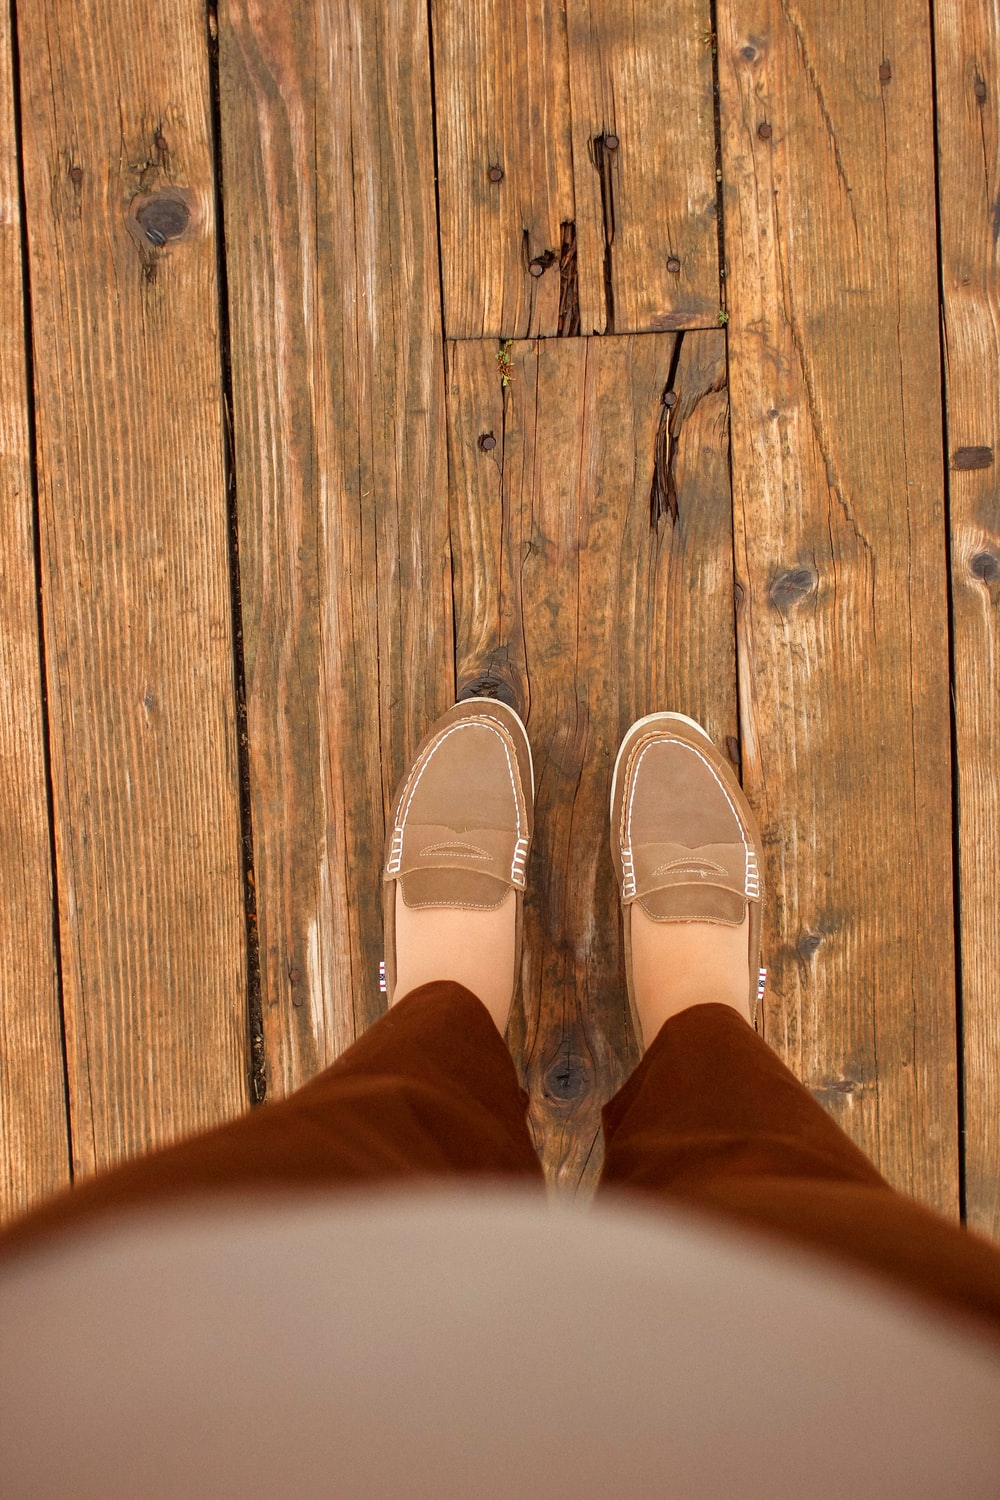 person in brown pants and white shoes